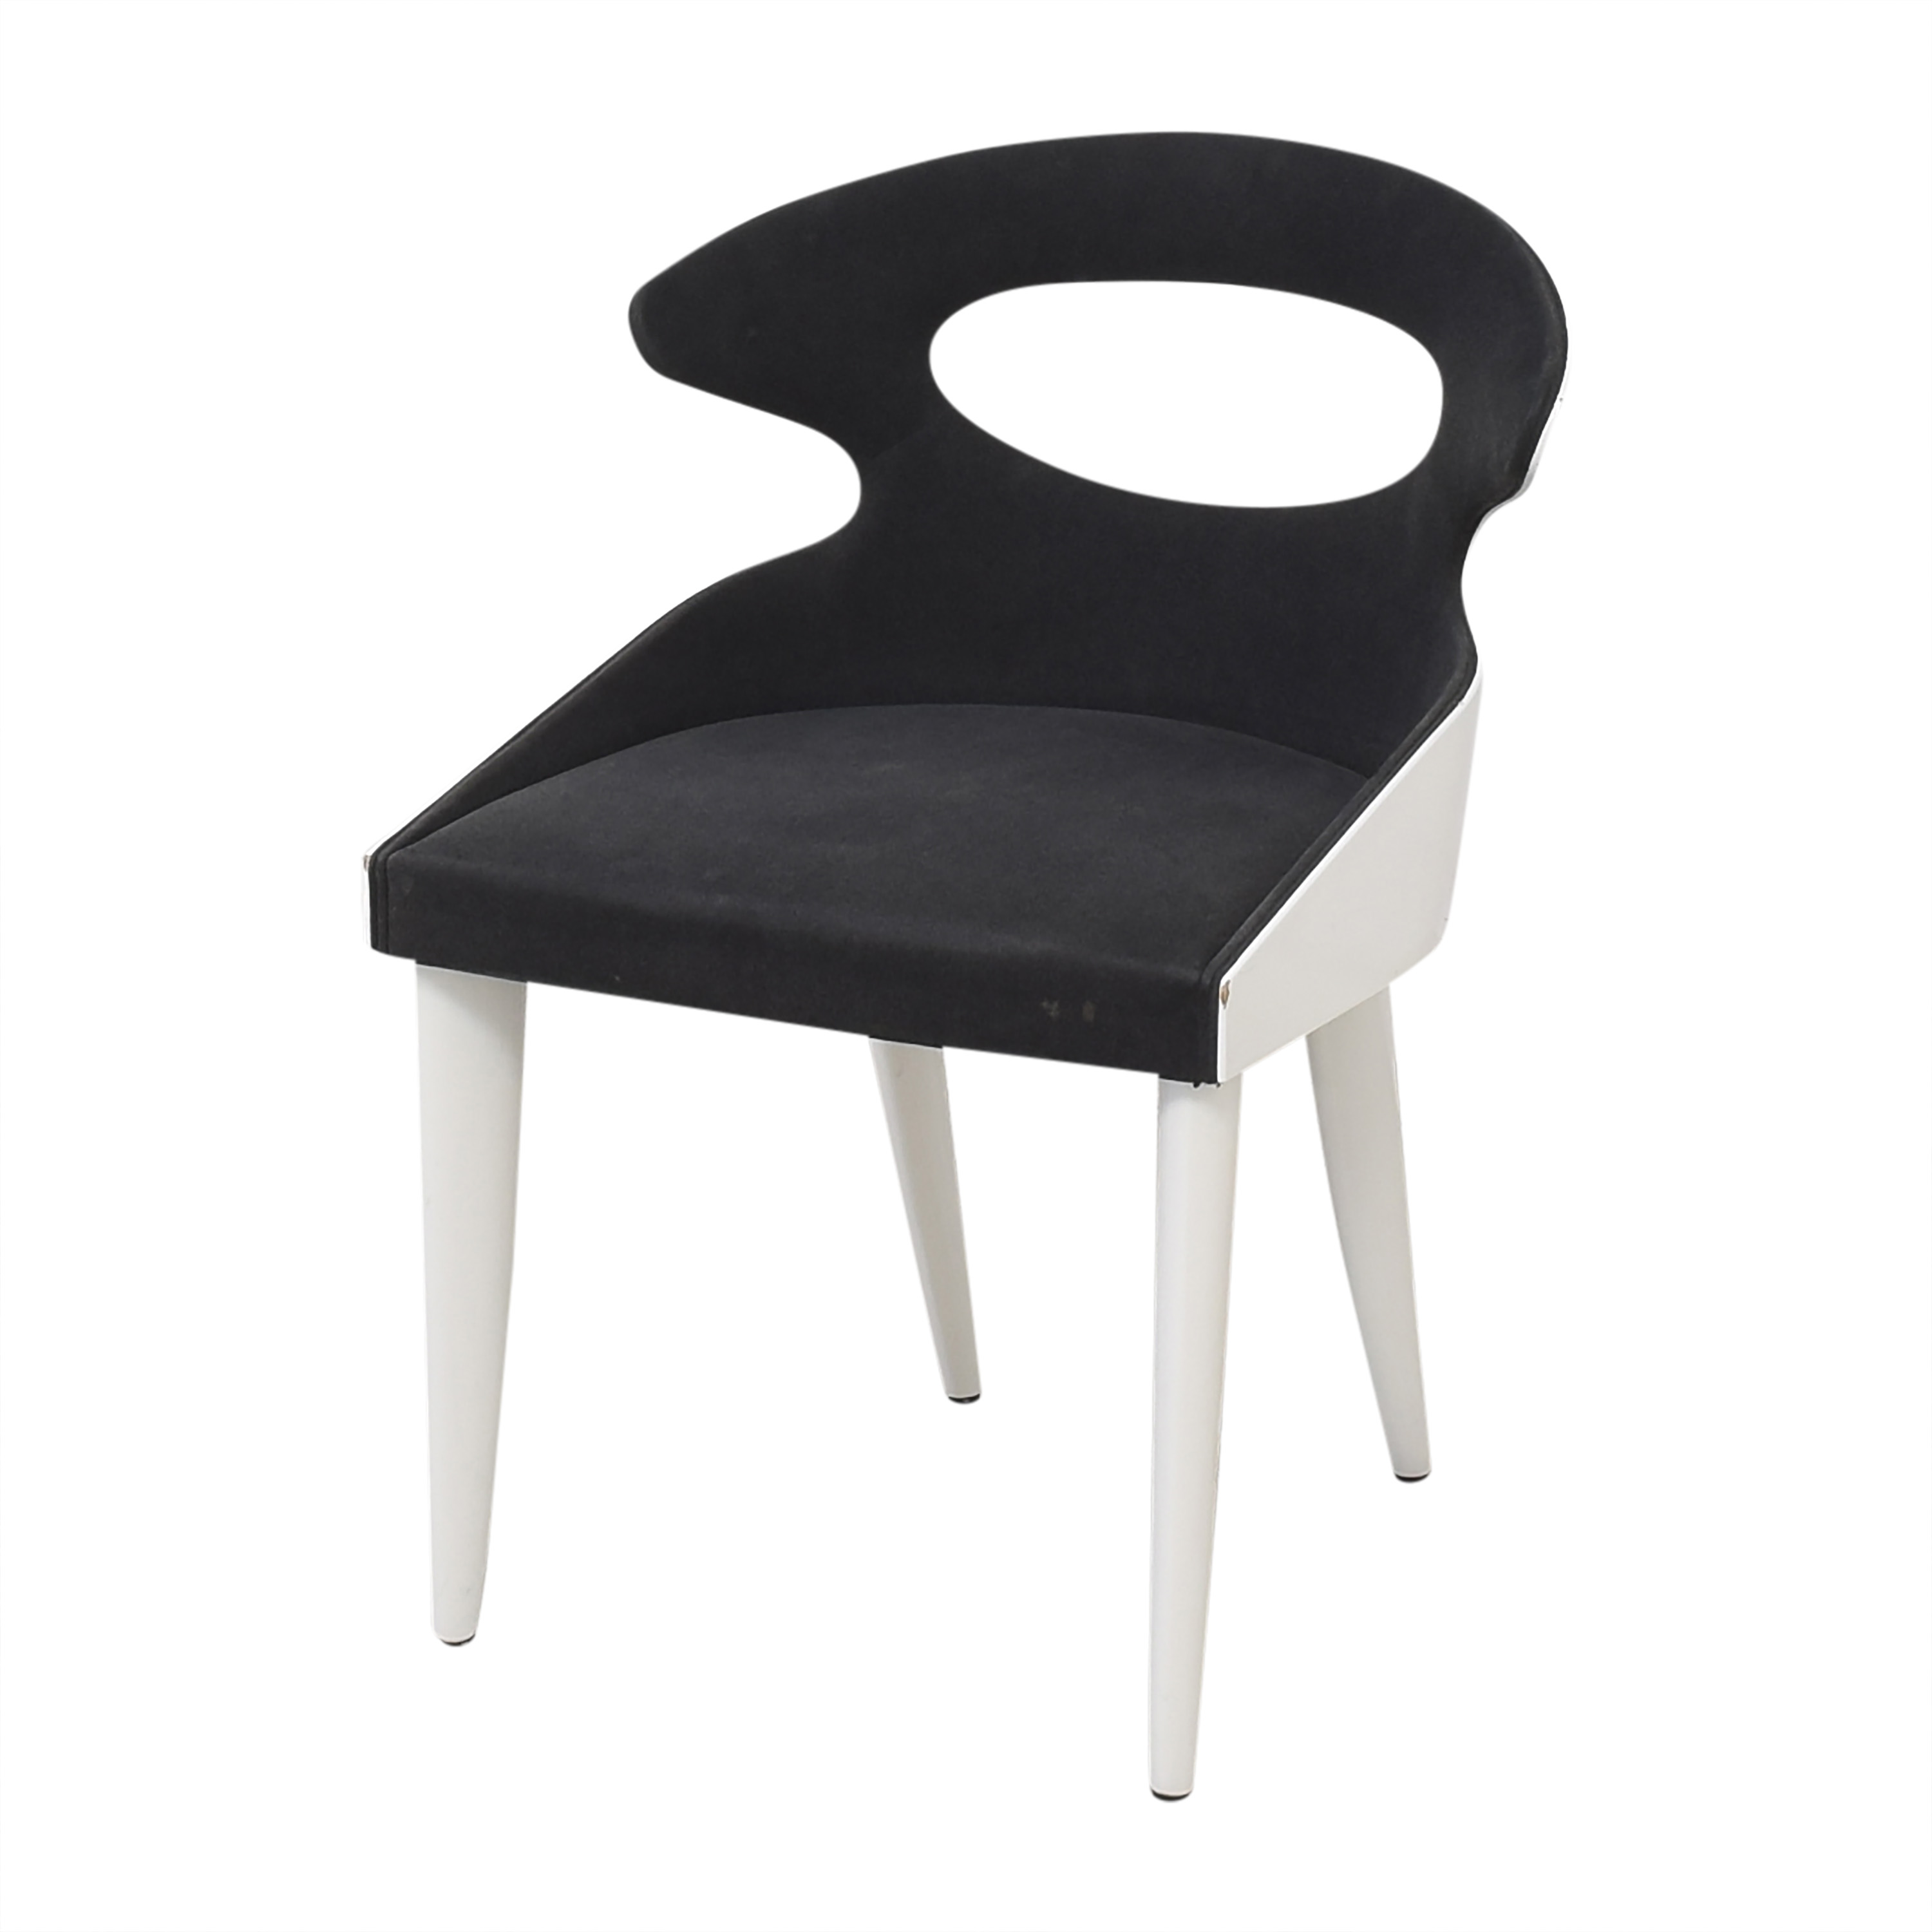 Potocco Potocco Modern Dining Chairs